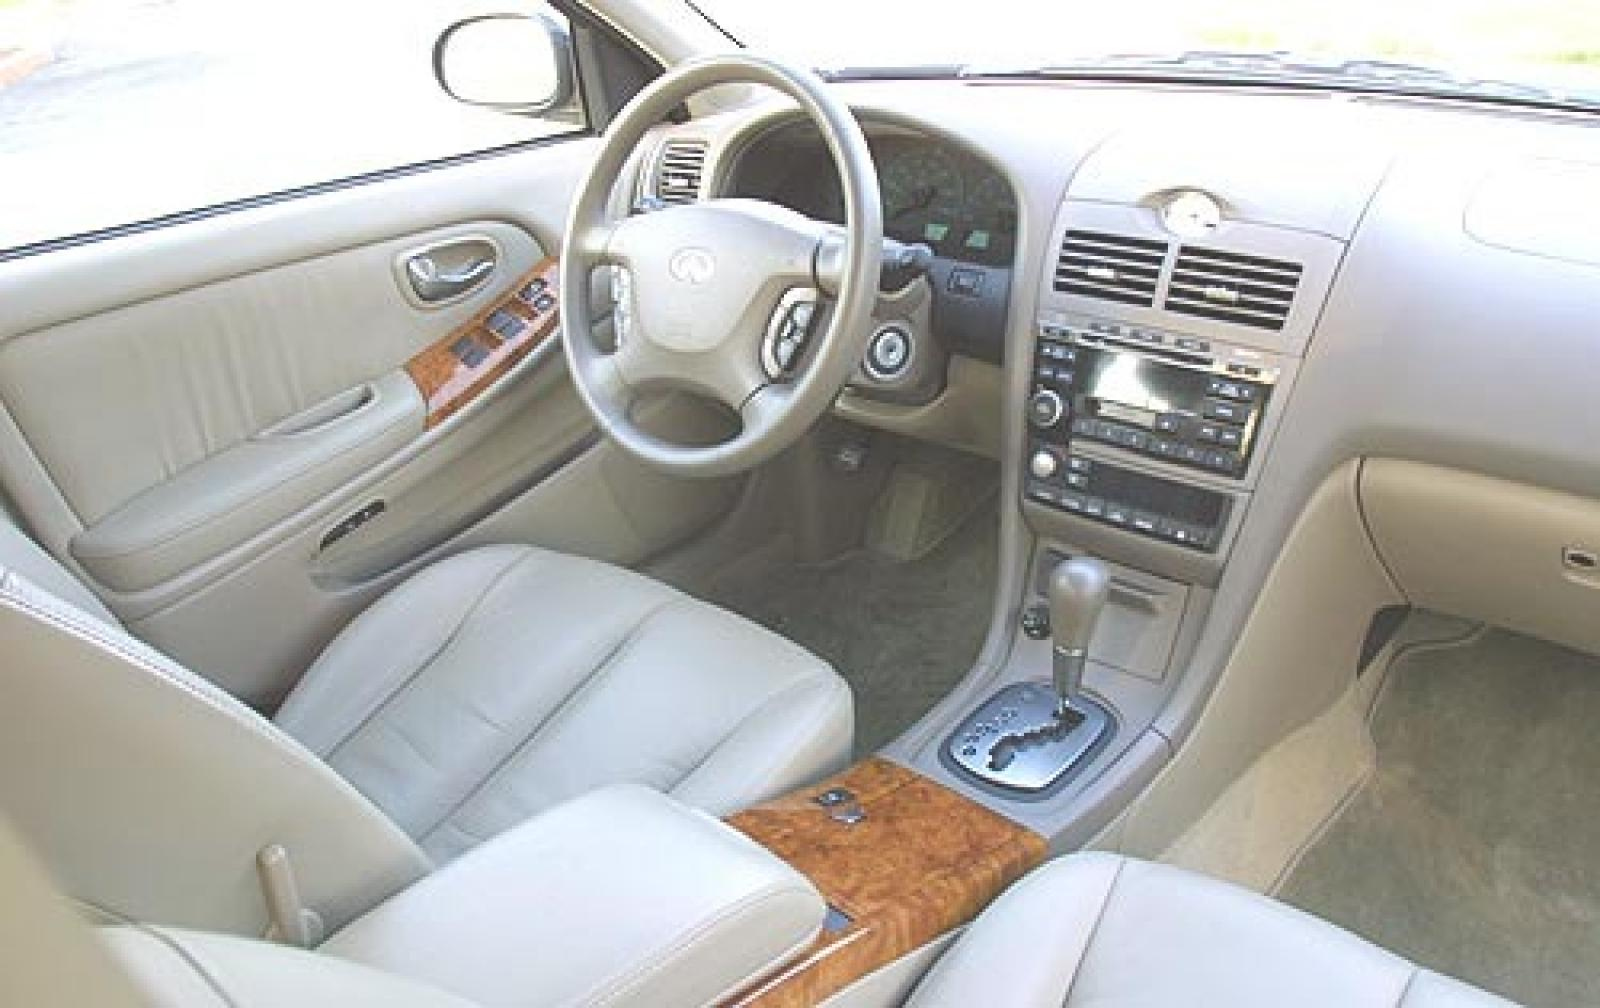 2003 infiniti i35 information and photos zombiedrive 800 1024 1280 1600 origin 2003 infiniti vanachro Choice Image